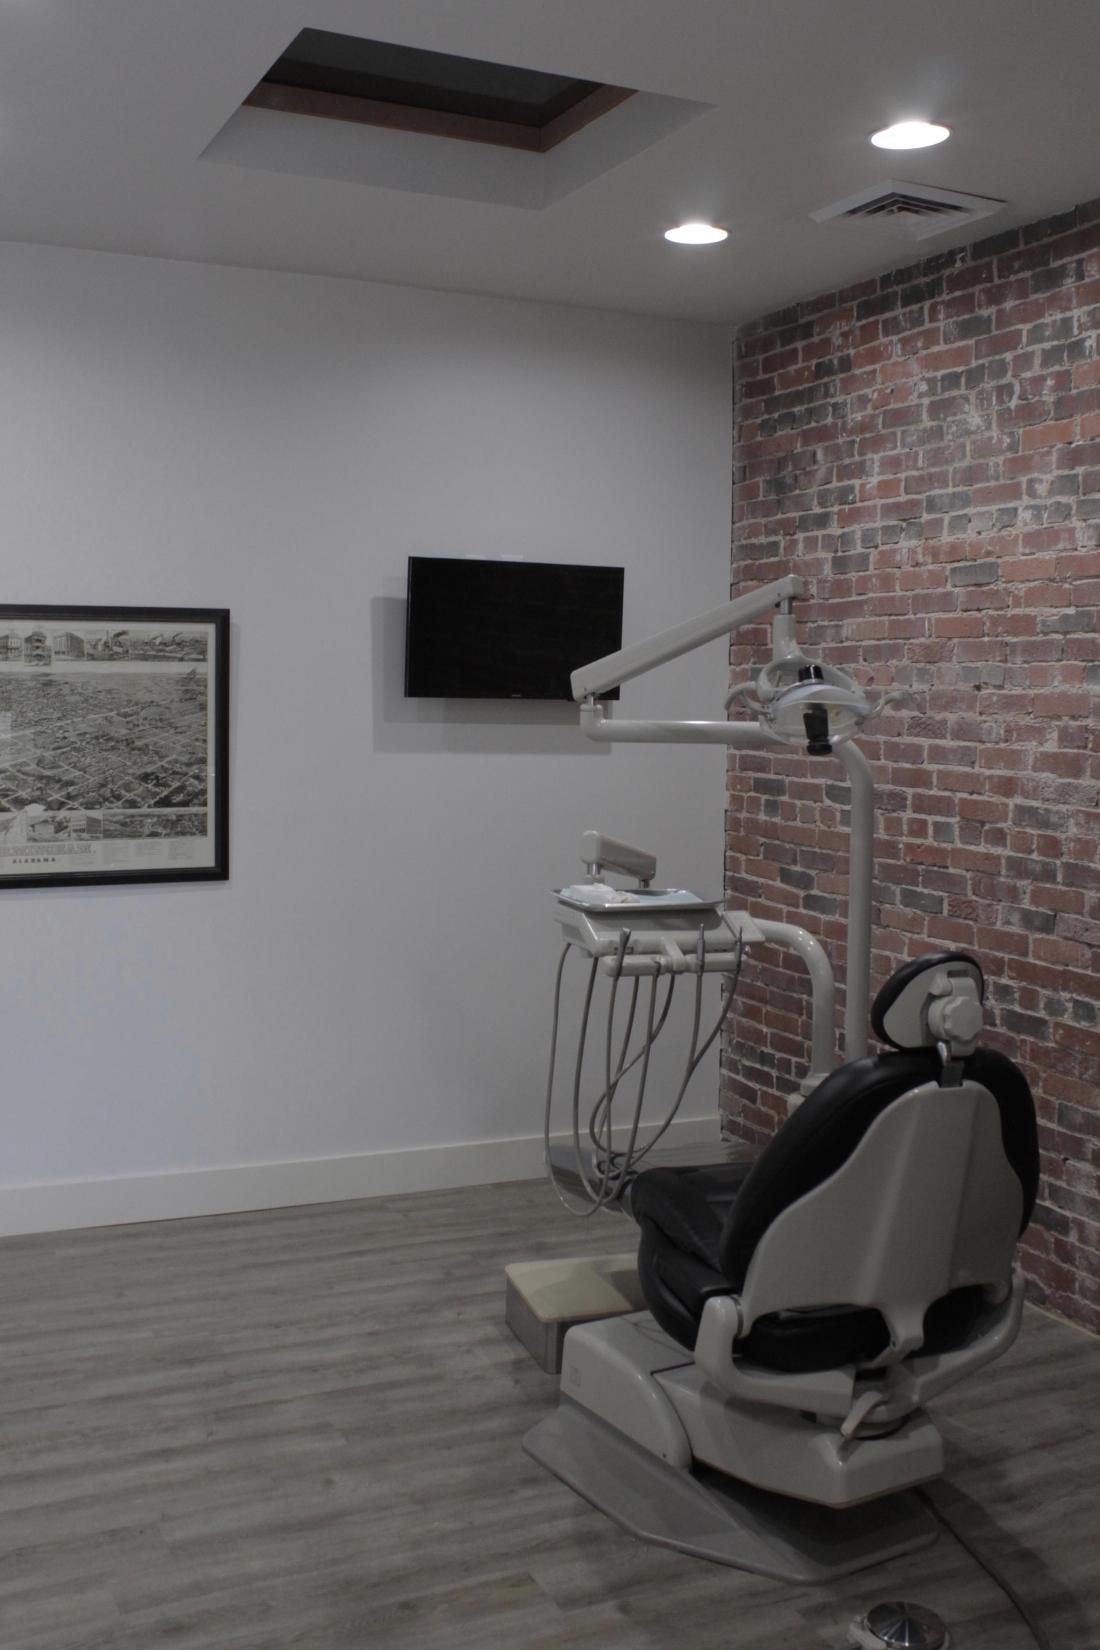 The Office Exam Room with a TV in Birmingham, AL at Cook Family Dental